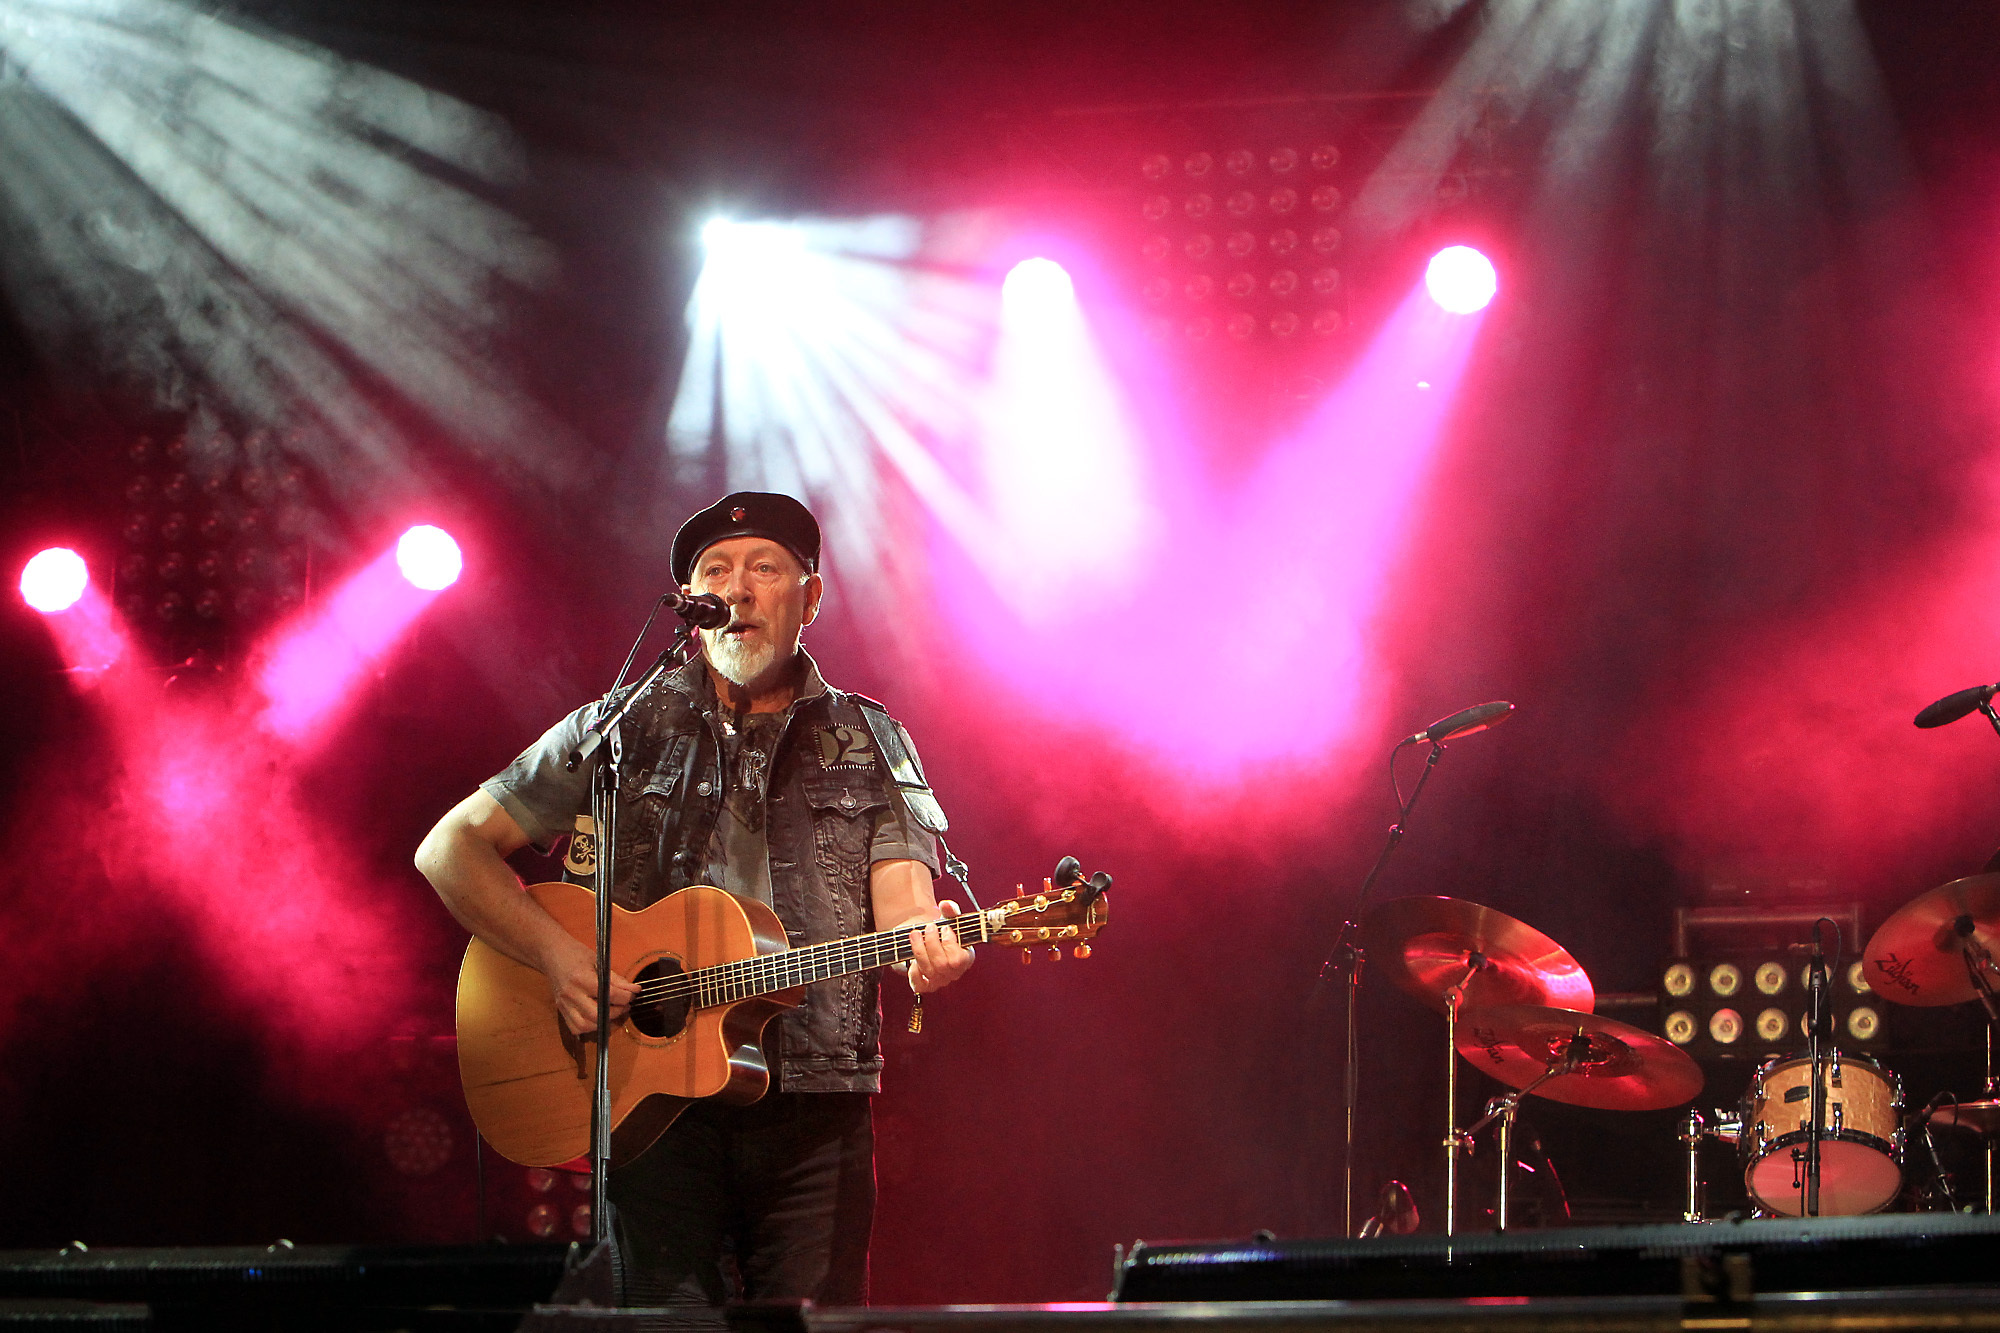 Richard Thompson on stage at Fairport's Cropredy Convention 2017 . Picture: Ric Mellis